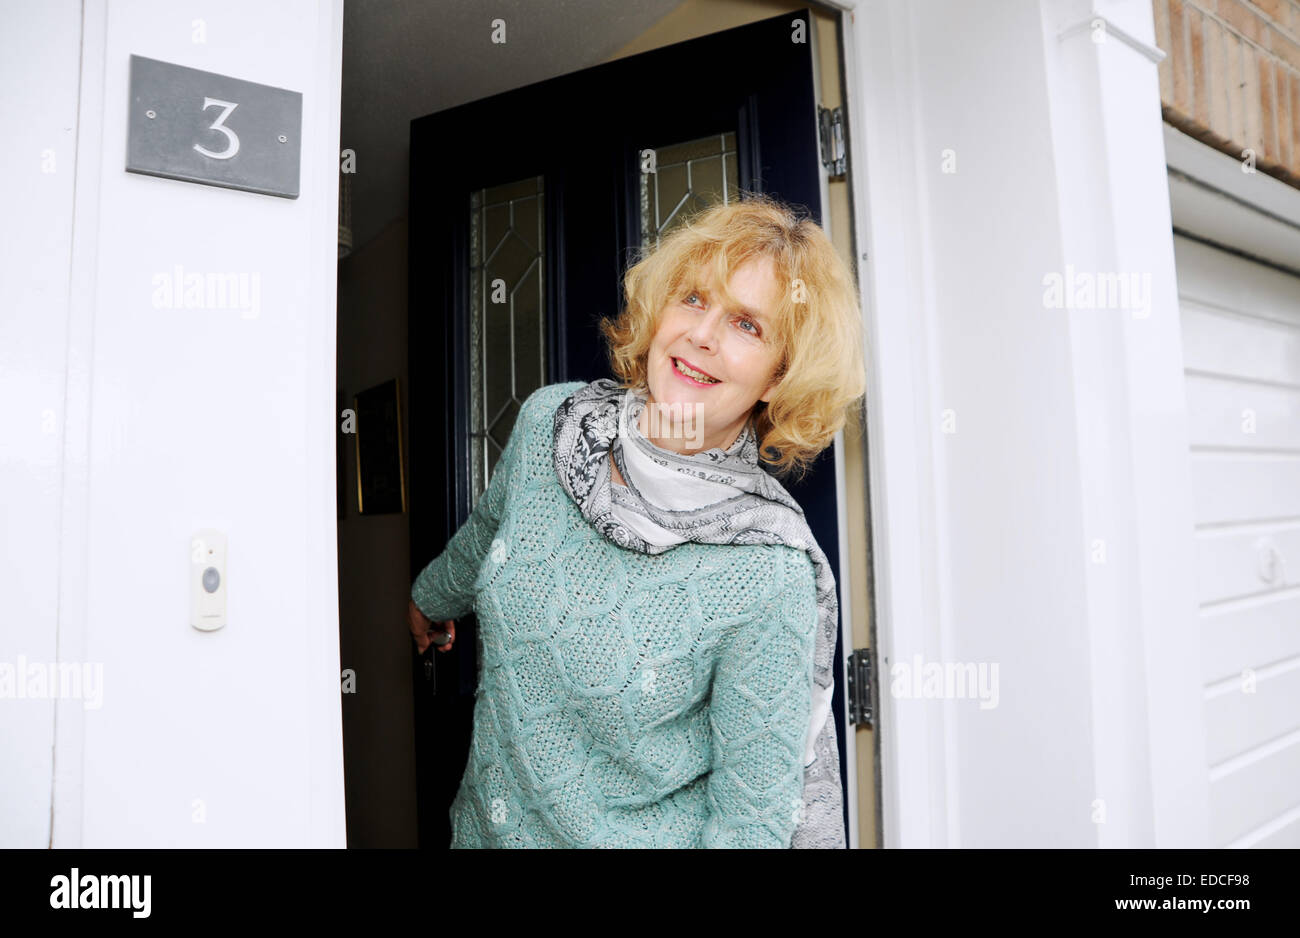 Stock Photo - Woman looking out of her front door to greet visitors